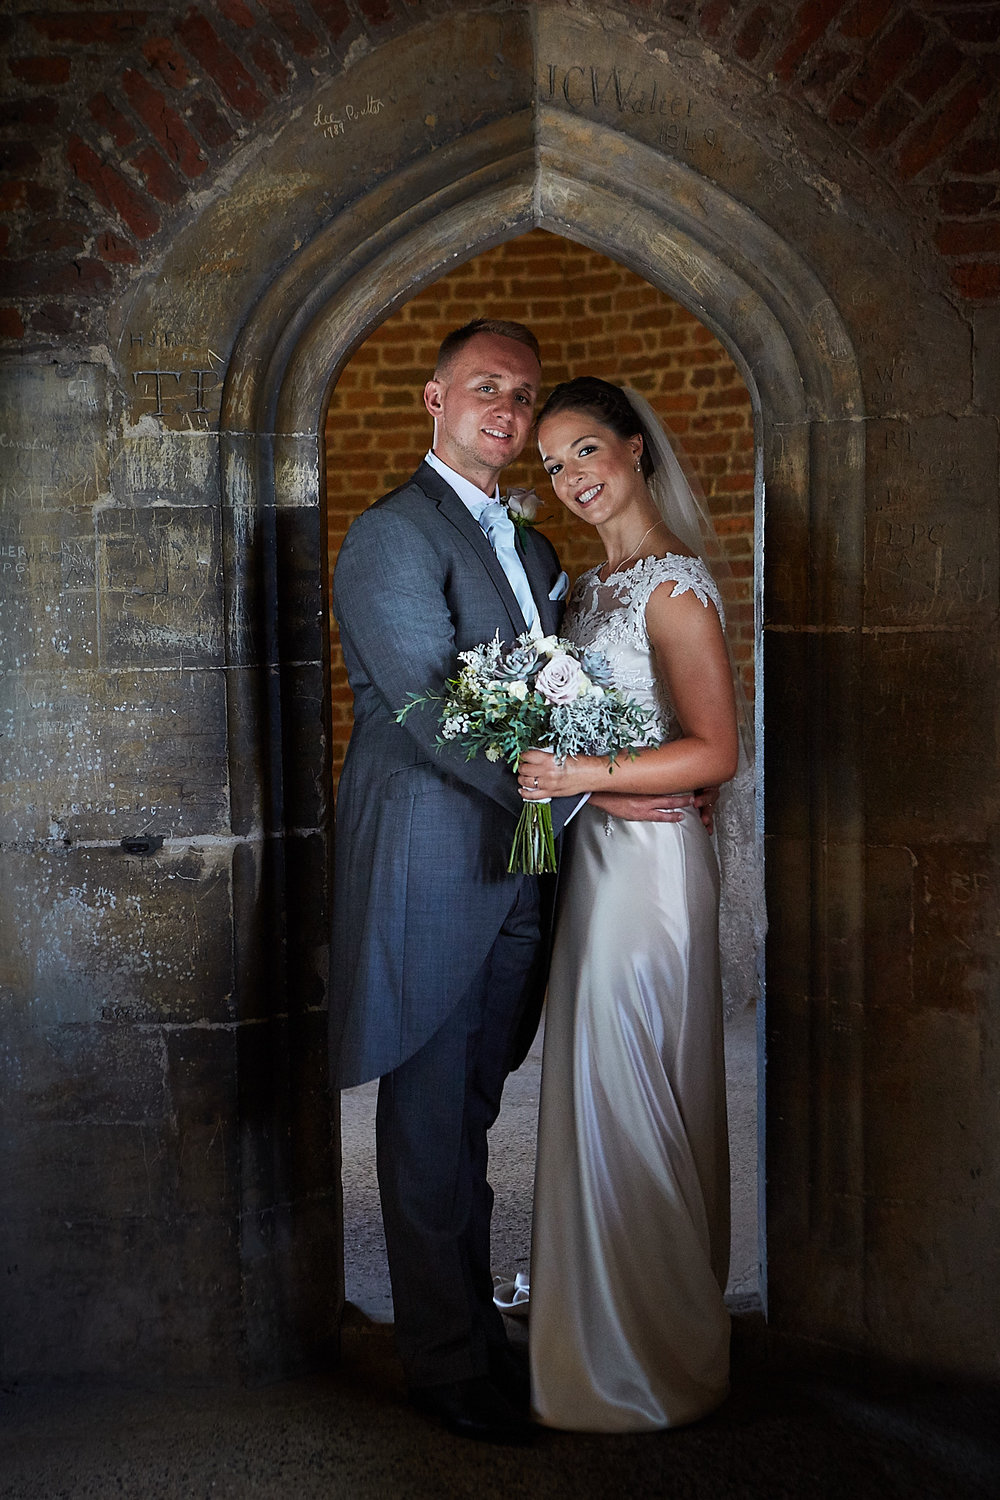 Wedding Photography at Tattershall Castle, Lincolnshire